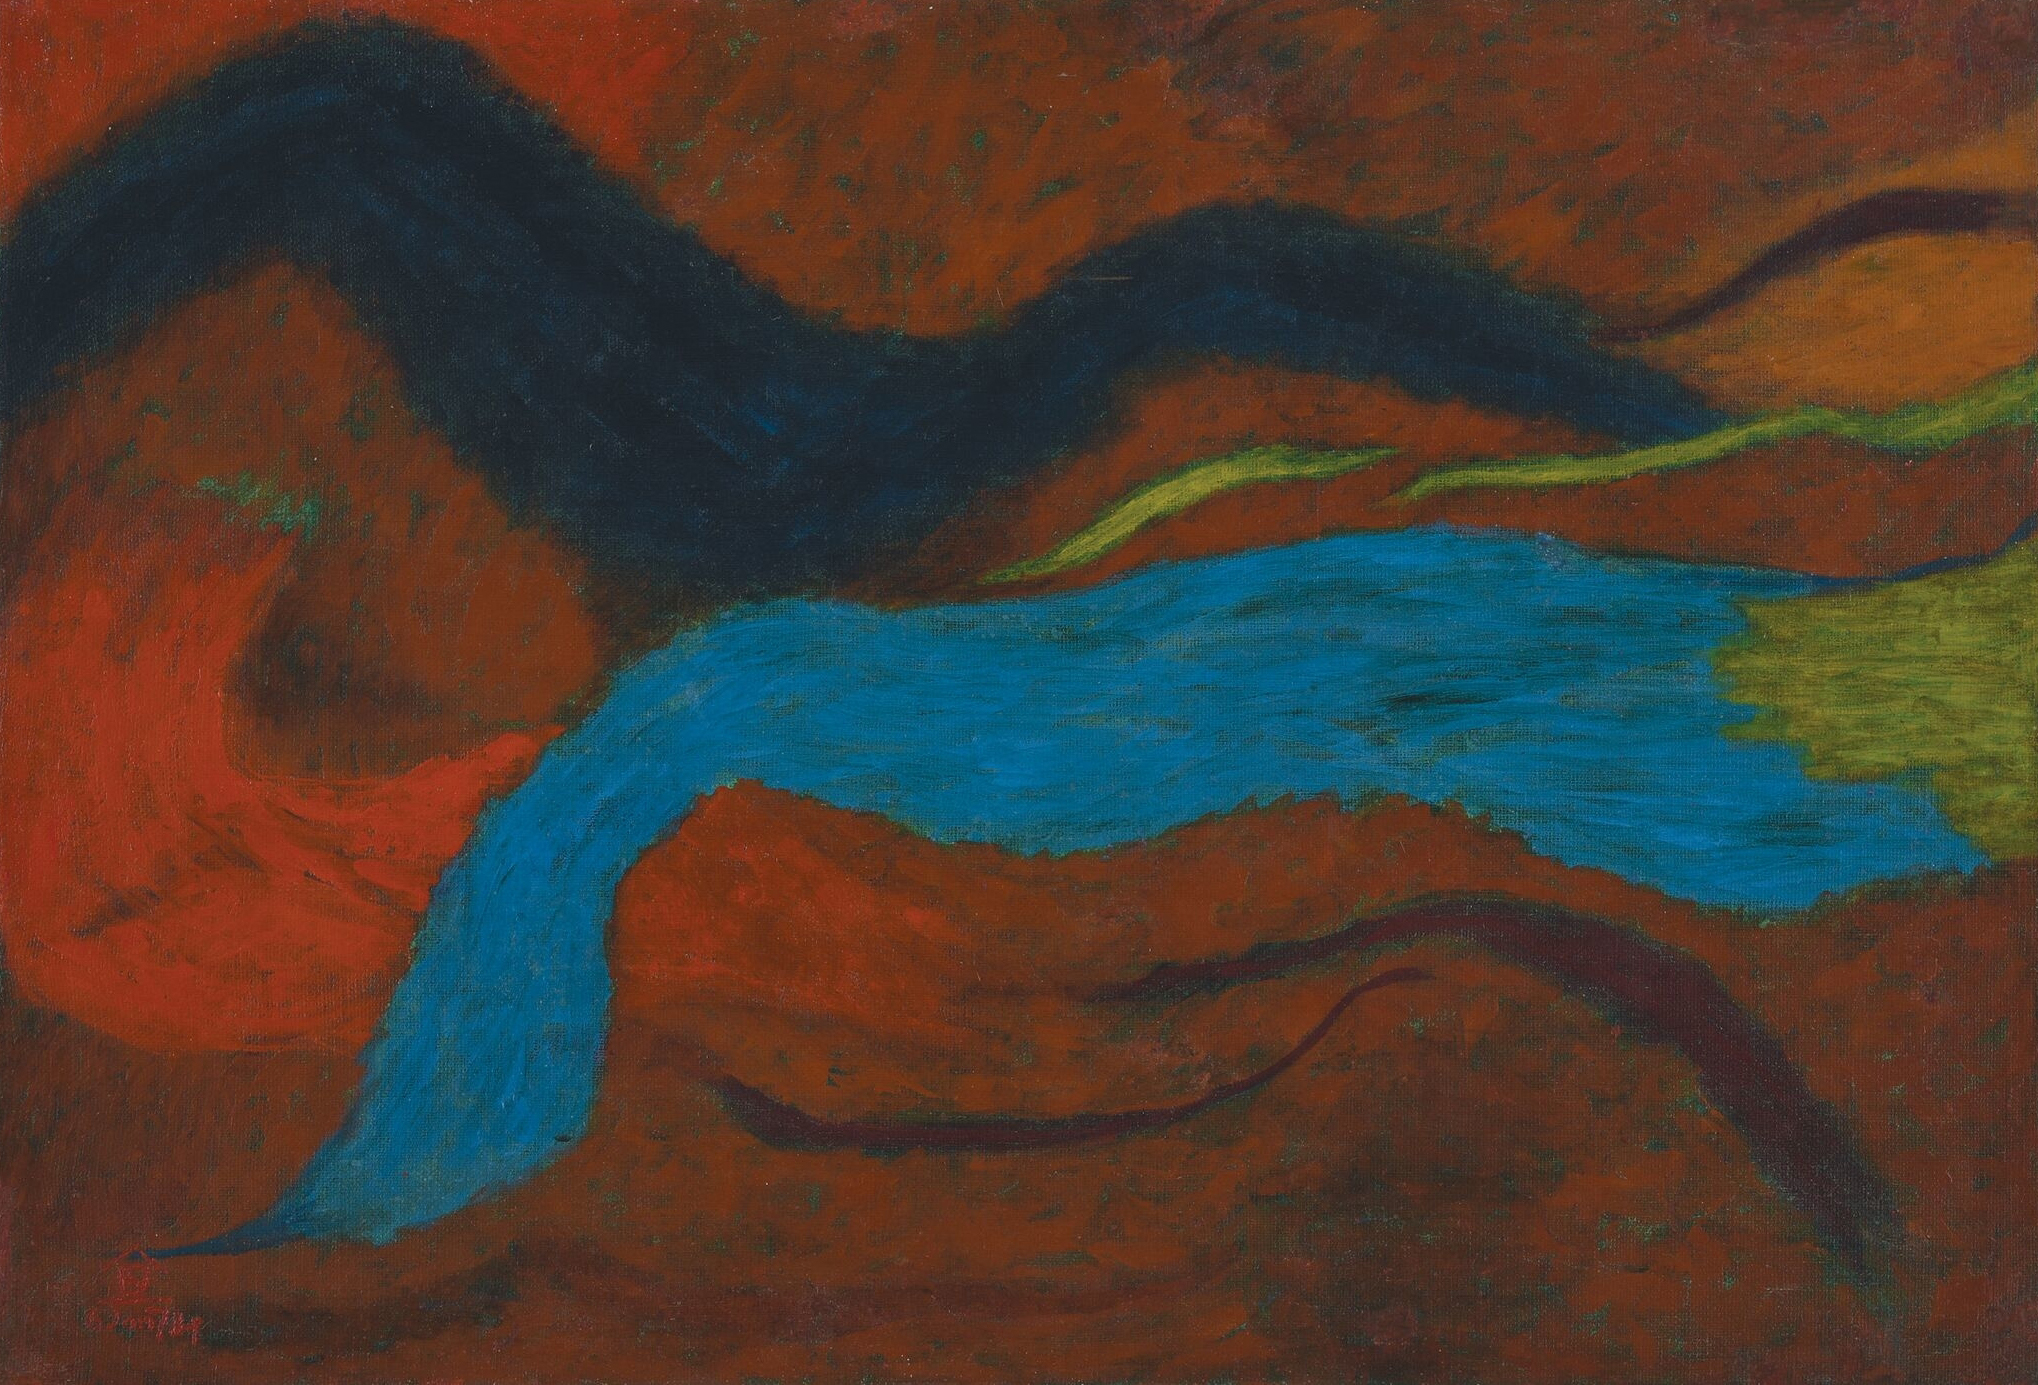 Nashar, Red Abstract, oil on canvas, 65 x 95 cm, 1974